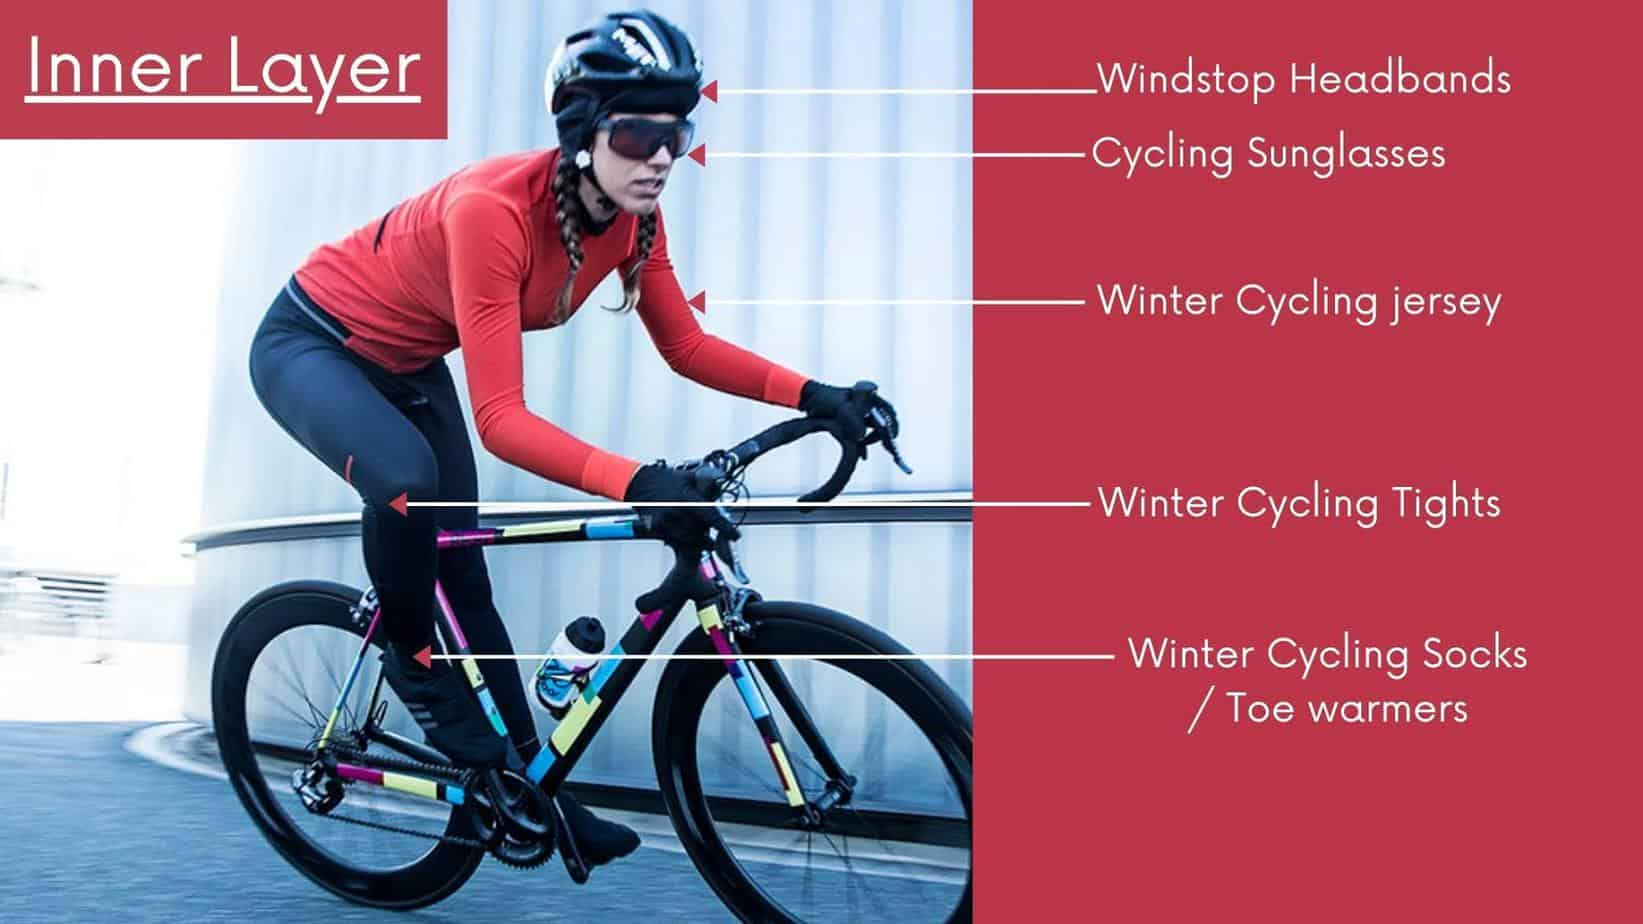 Inner Layer of Winter Cycling